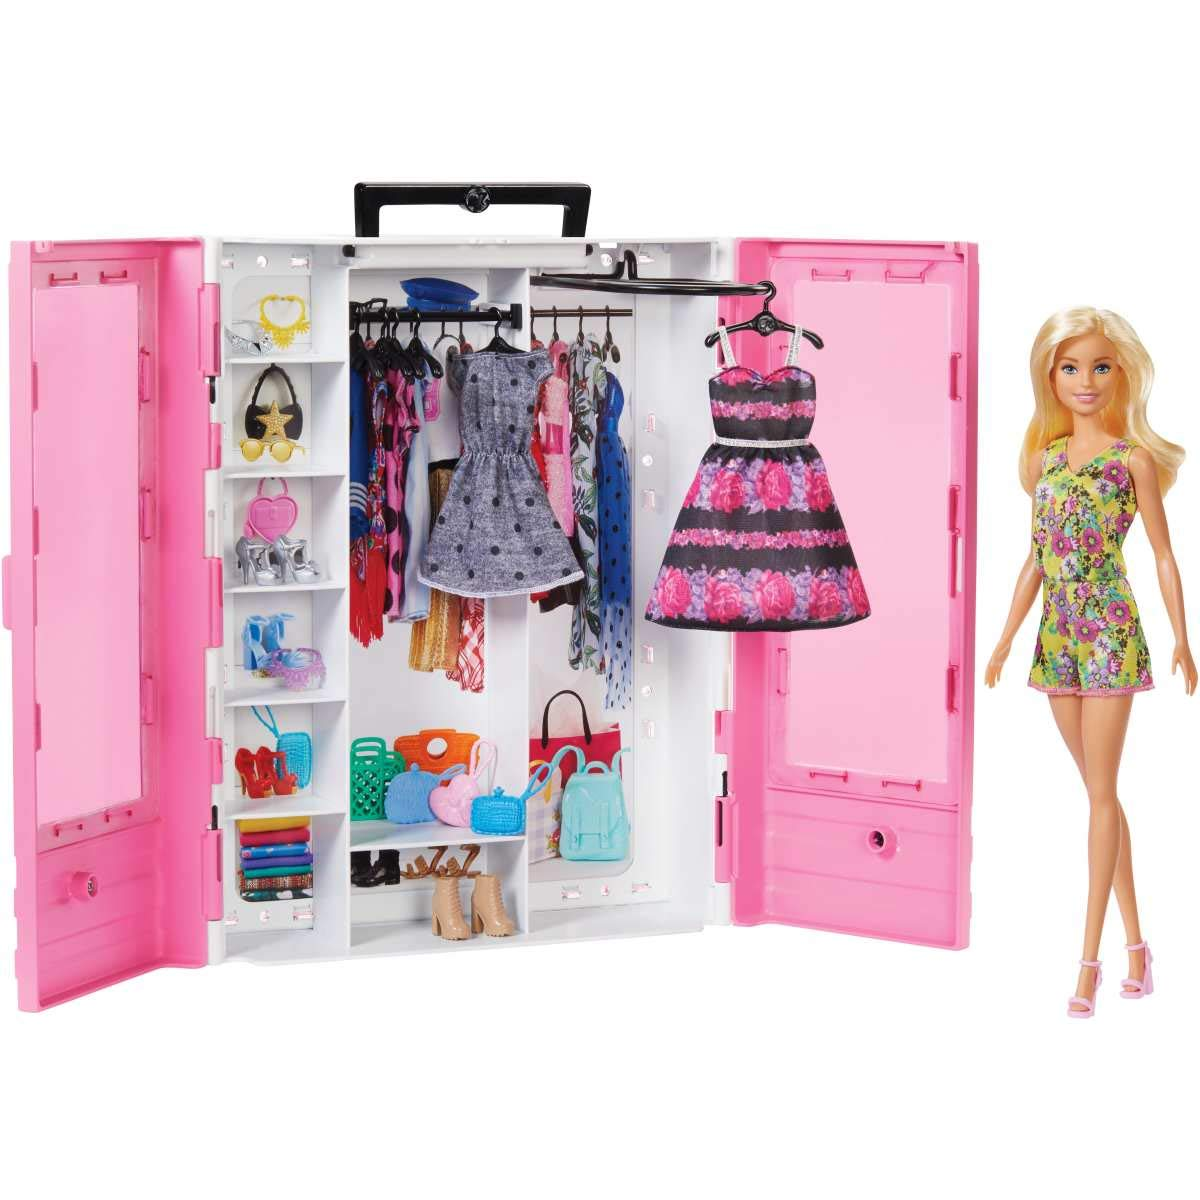 Barbie Fashionistas Ultimate Closet Doll and Accessories by Barbie